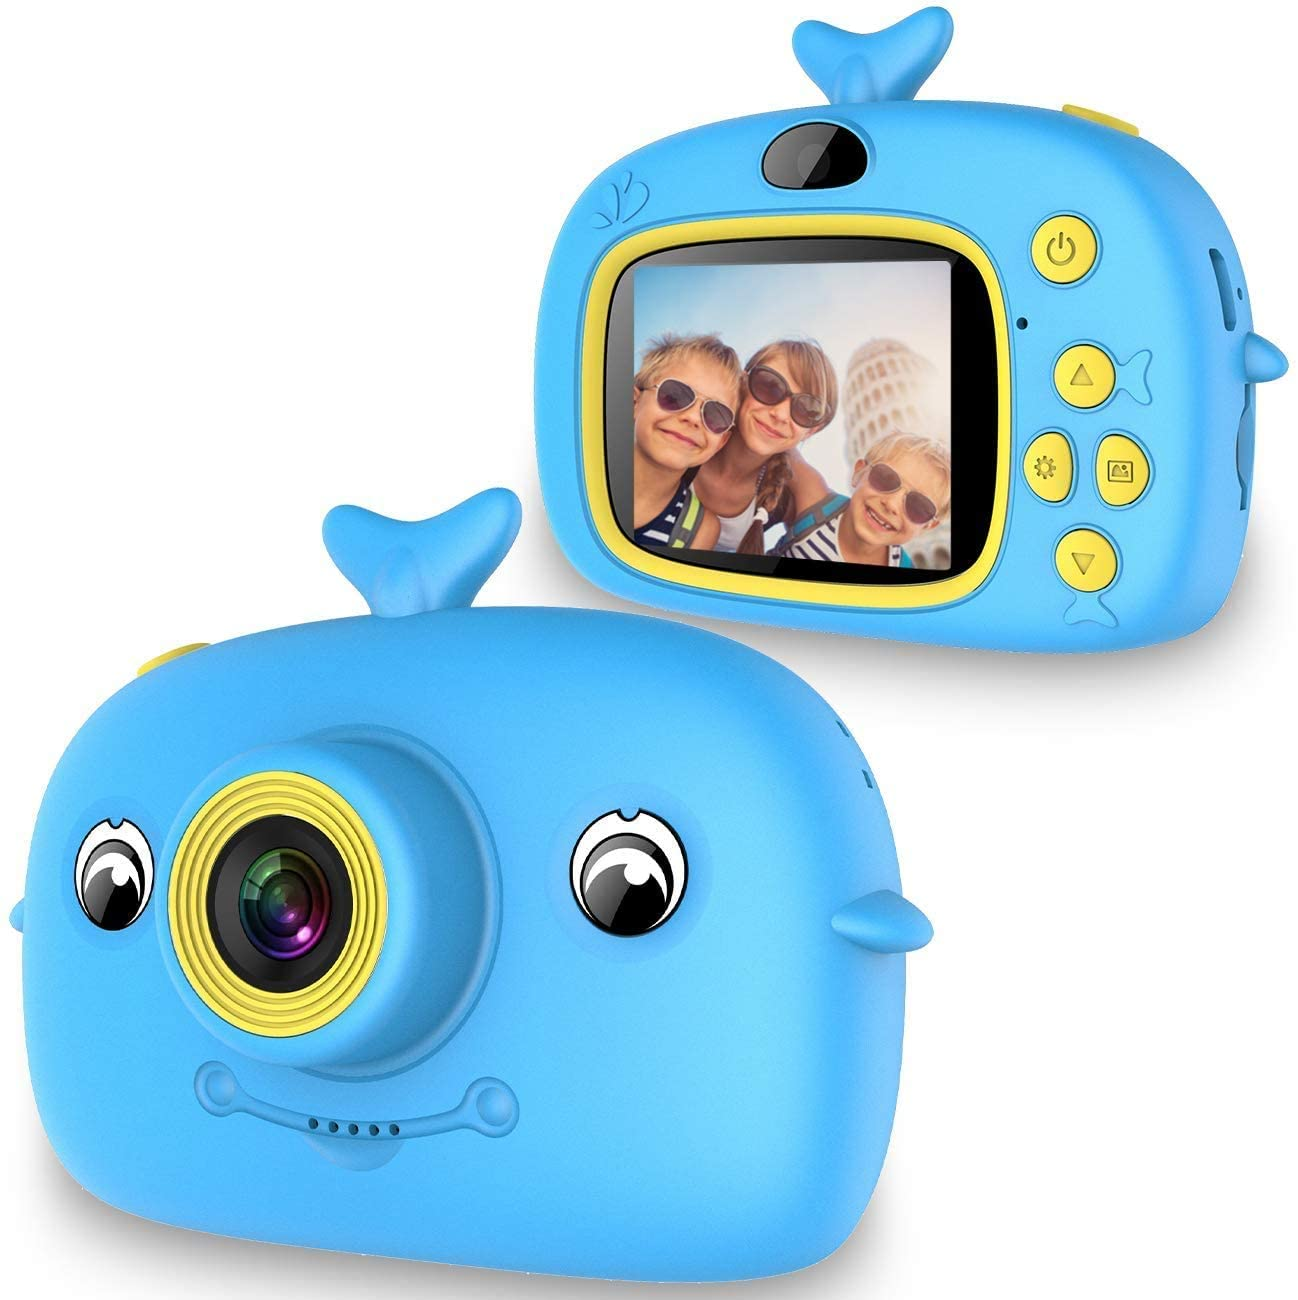 UPGRADE KIDS CAMERA 1080P HD DIGITAL VIDEO CAMERAS FOR CHILDREN 2IN DIGITAL CAMERA TOYS GIFT FOR TODDLER AGE 3-UP YEAR OLD BOYS GIRLS PRESCHOOL BIRTHDAY PRESENT (BLUE)